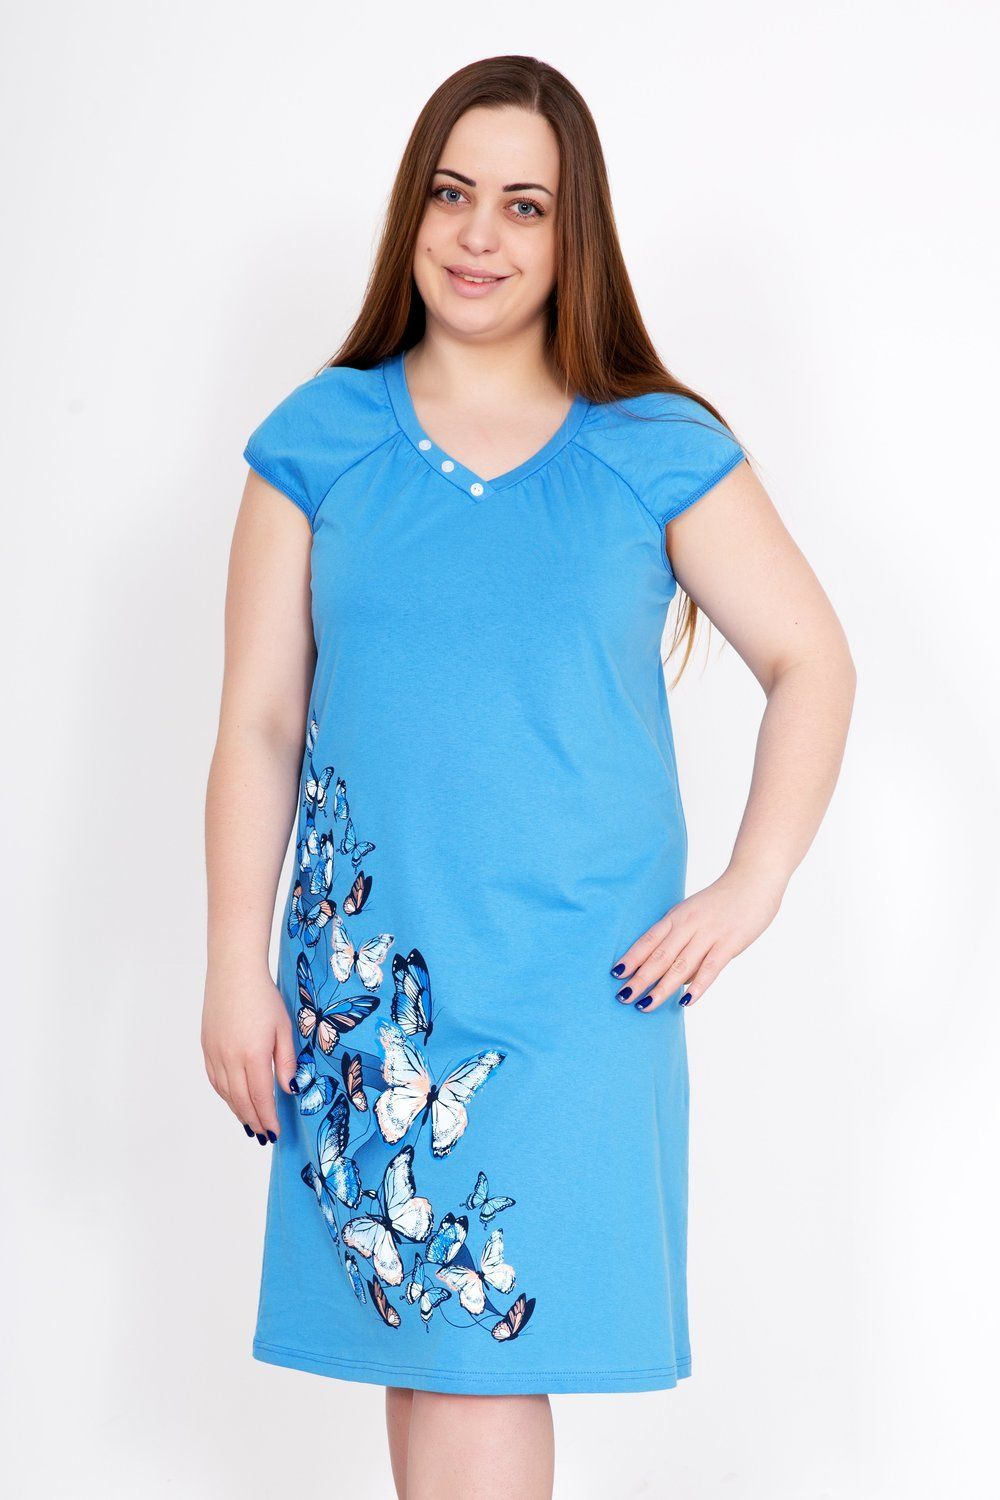 Lika Dress / Nightgown Poljot Art. 5009